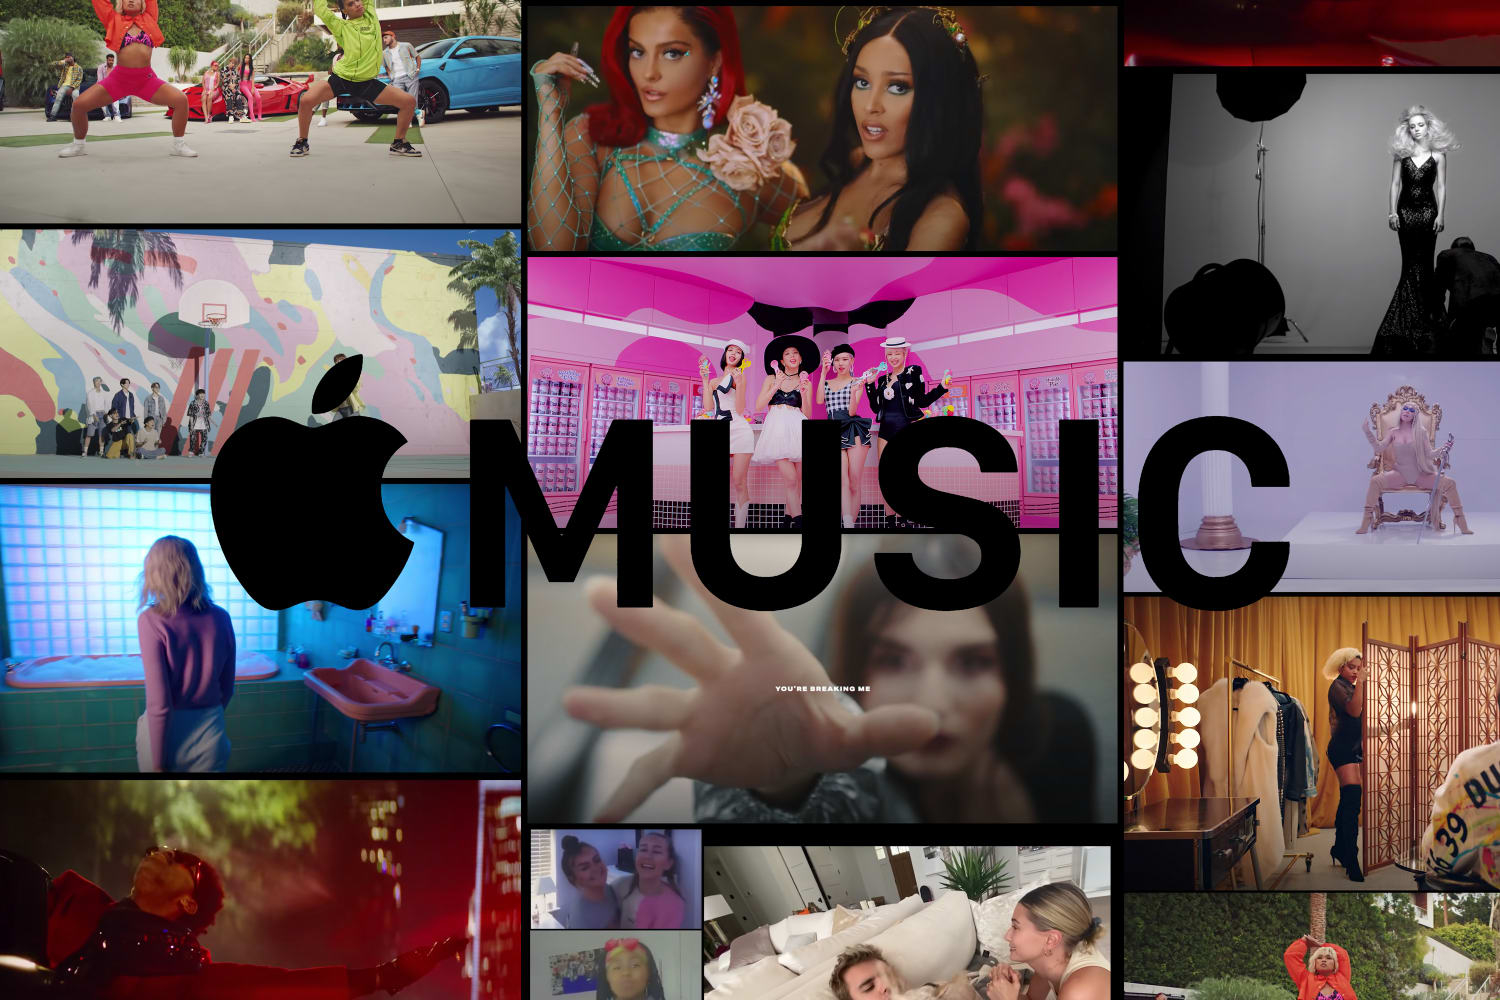 free-apple-music-tv-streams-music-videos-24-hours-daily-us-only-20201020-1